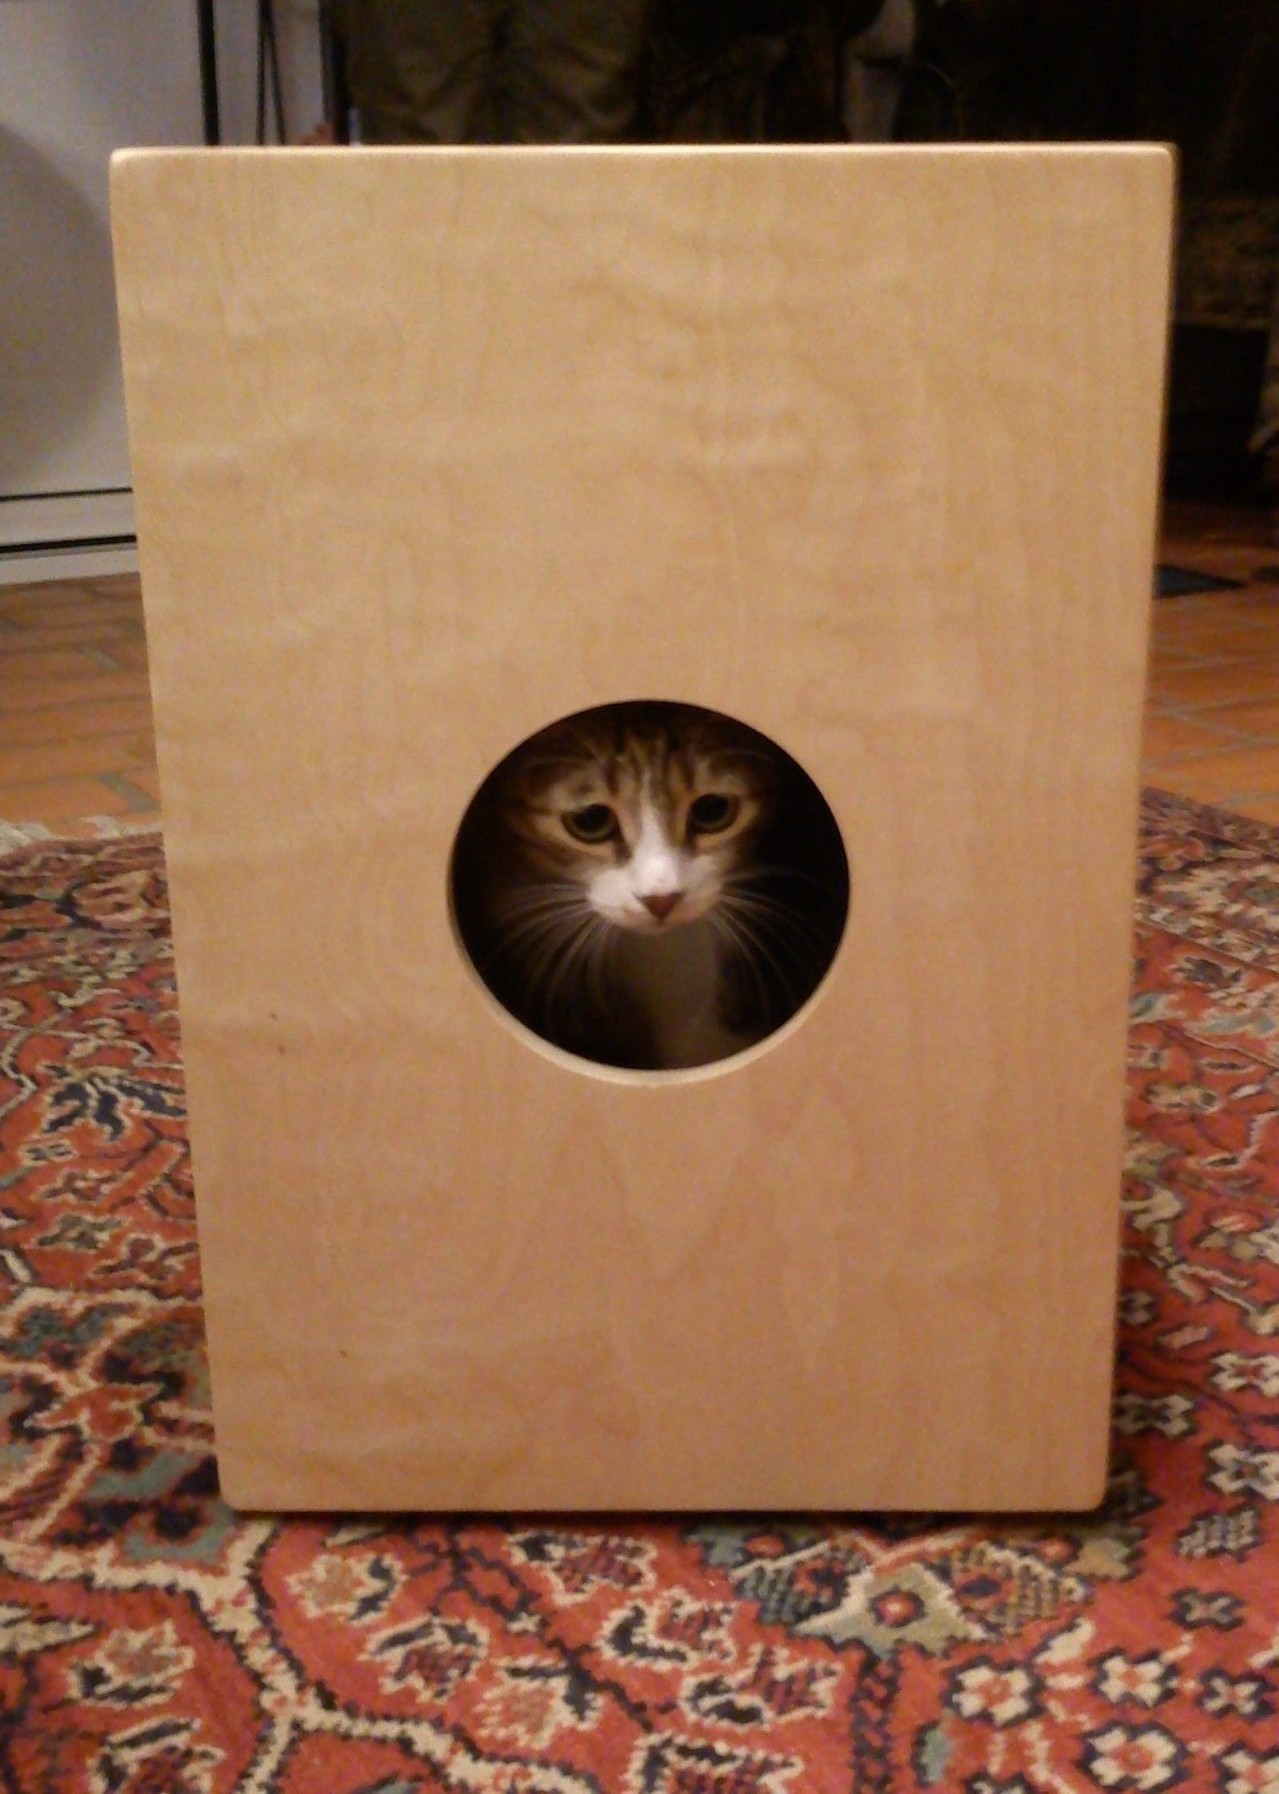 Cindy in the Cajonbox